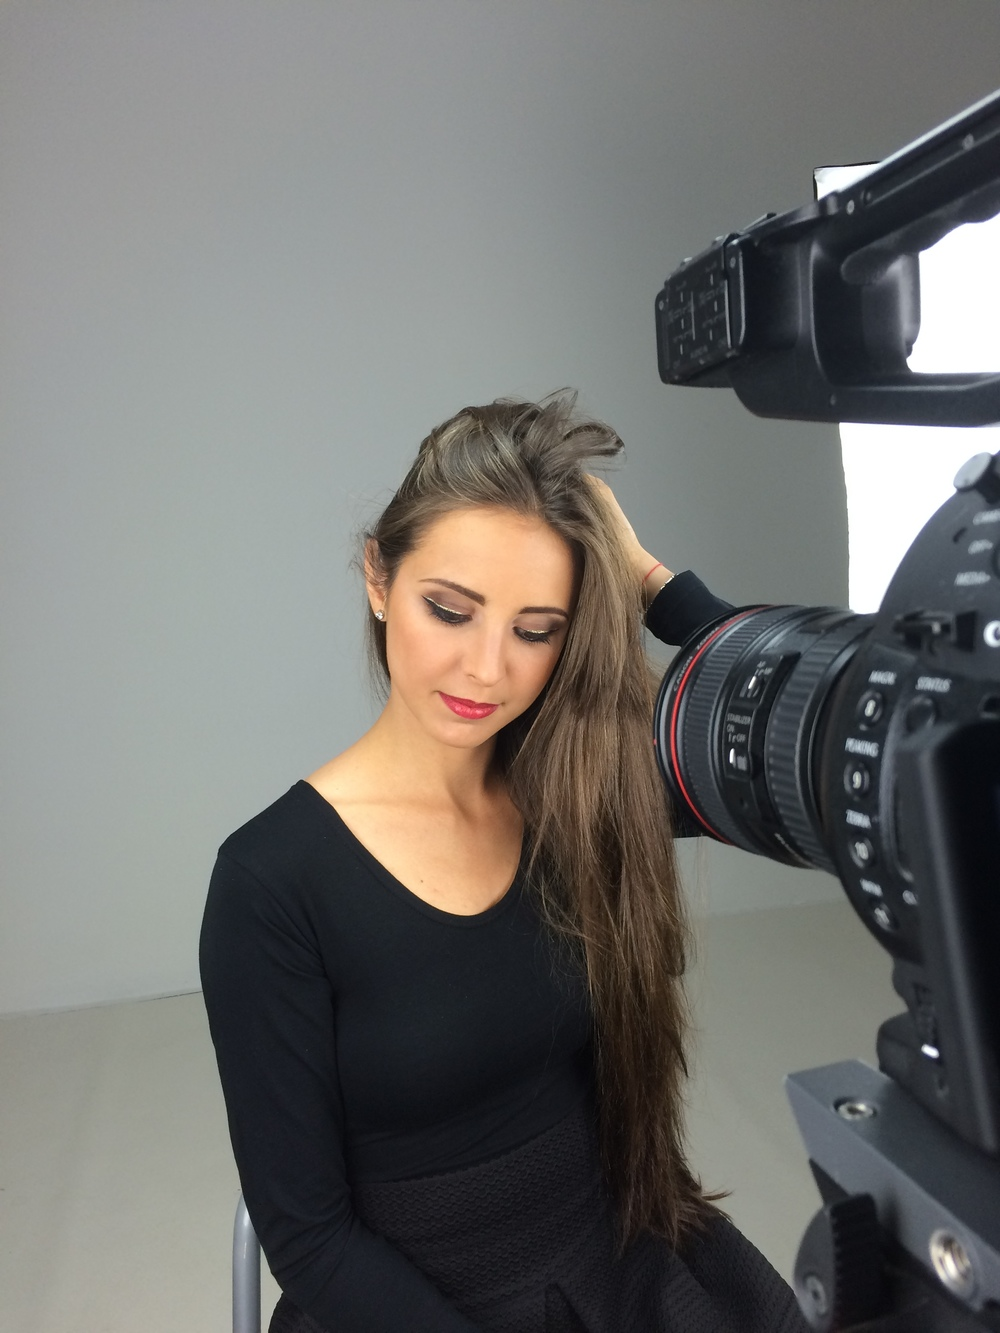 on set filming for cosmetics brand